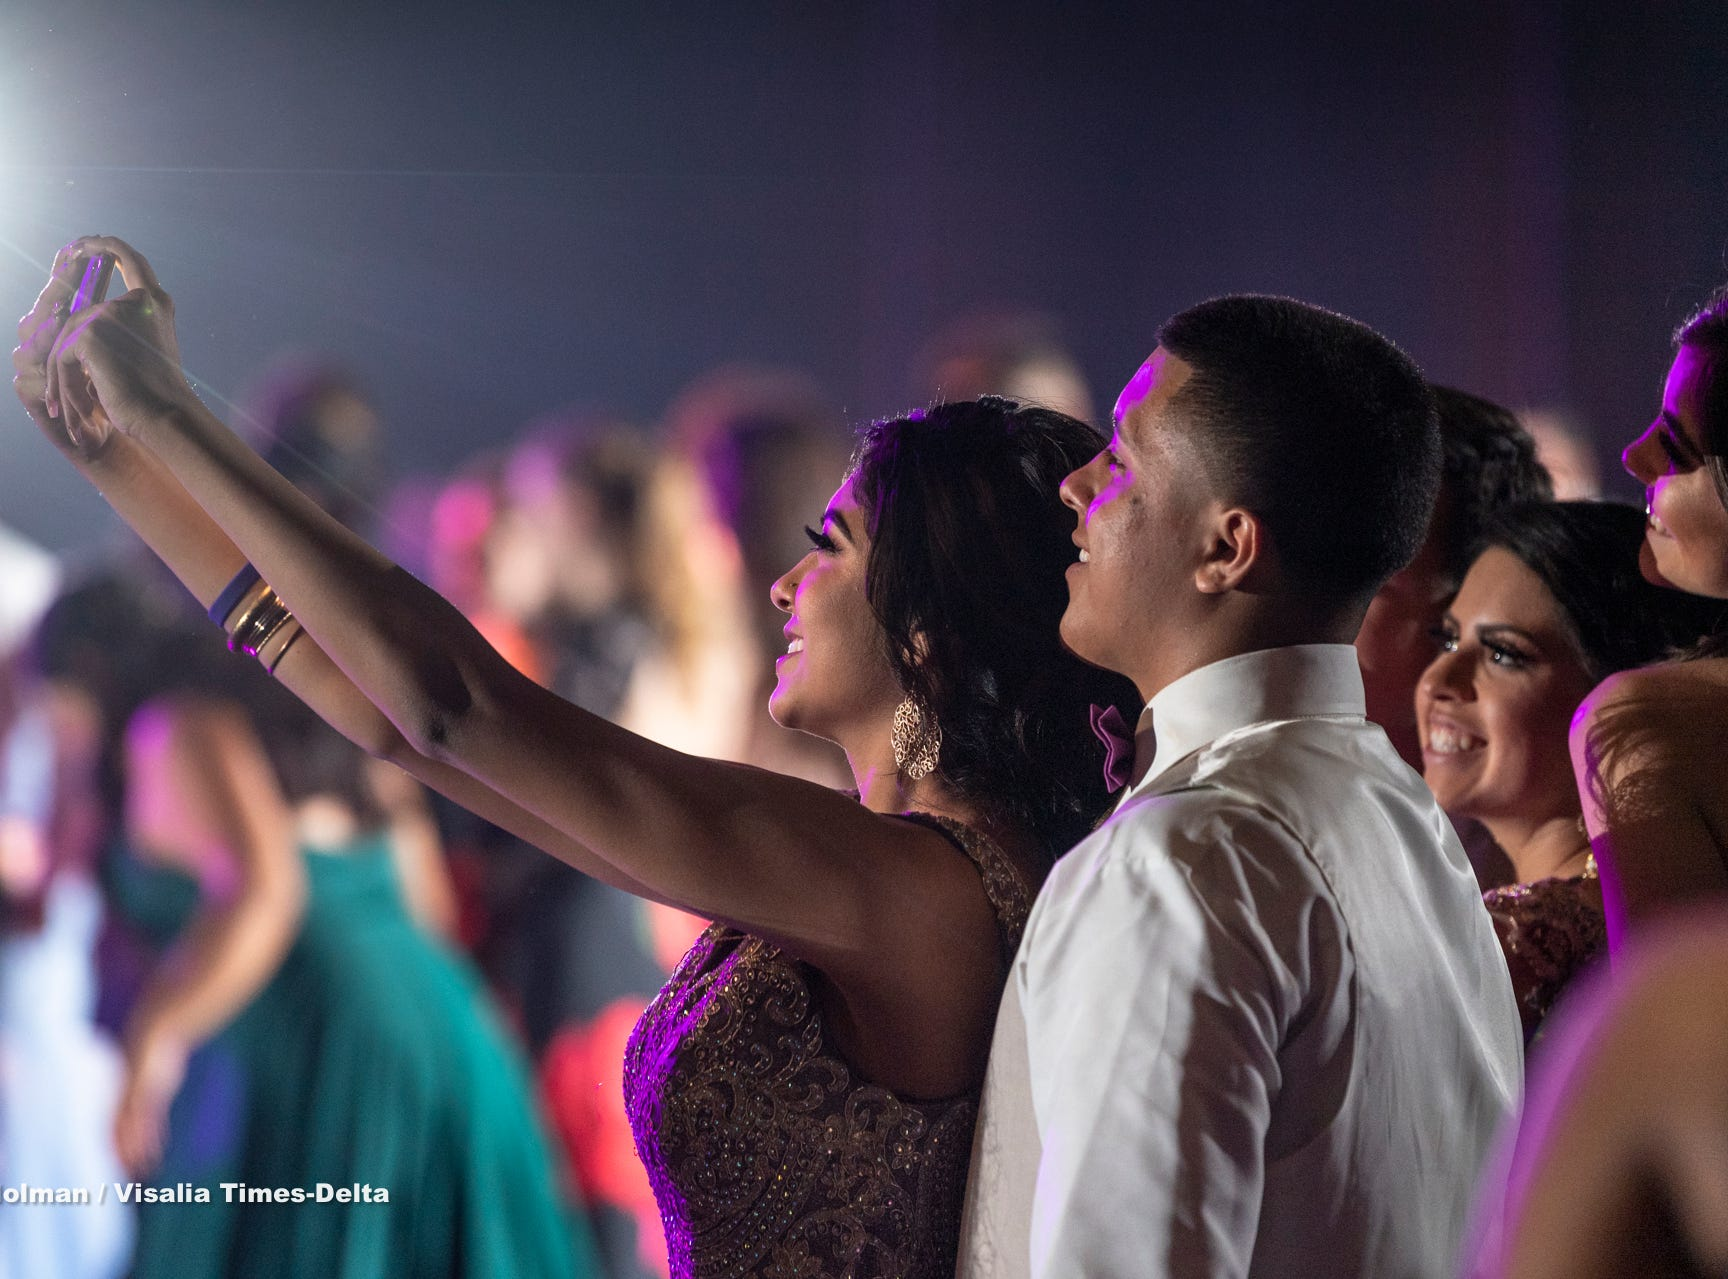 Golden West student Savannah Gutierrez takes a selfie with her date  Emmanuel Lopez during Visalia Unified School District's High School prom on Saturday, May 11, 2019.